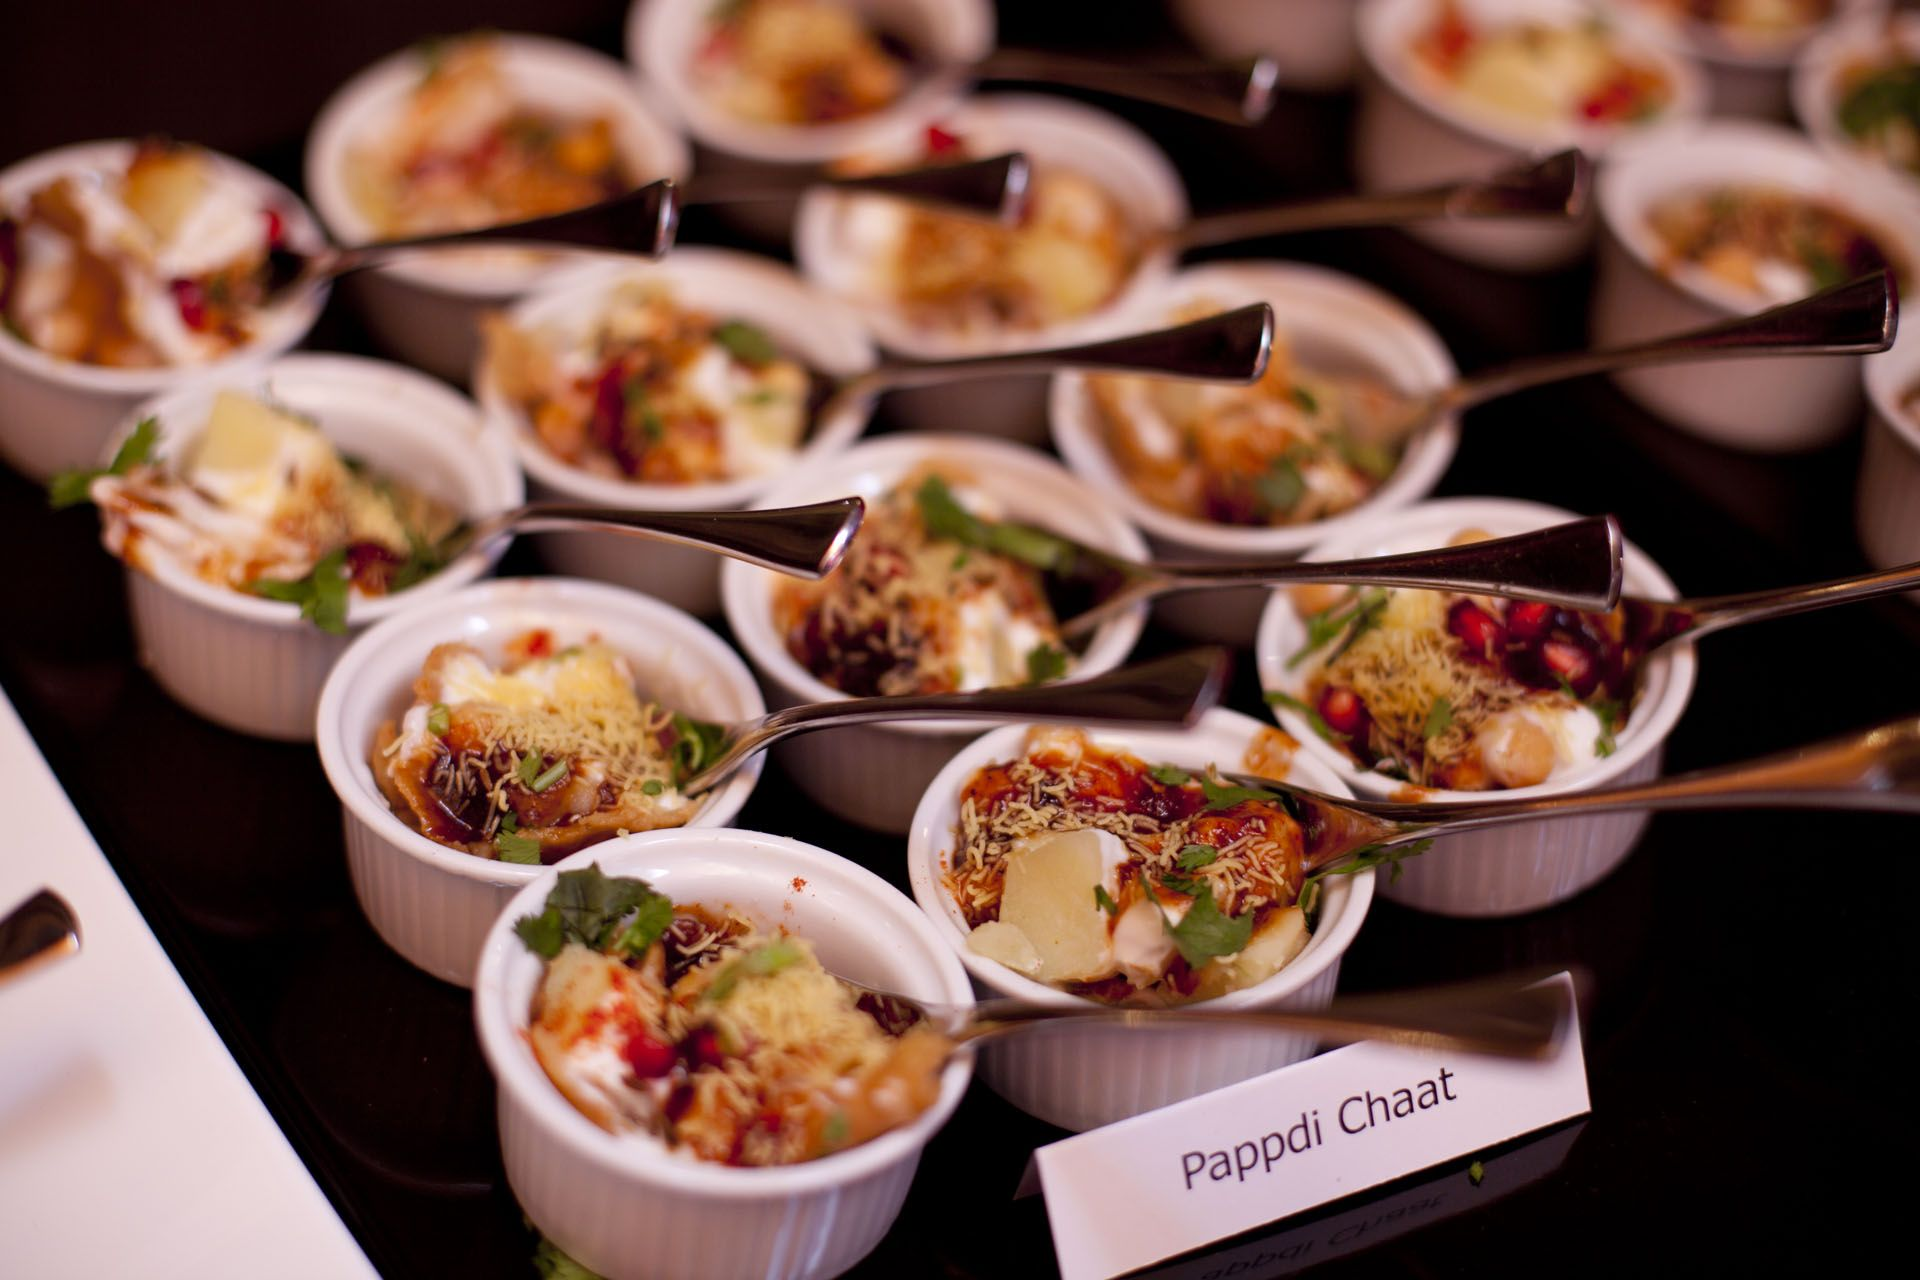 Pappadi chaat canapes weddingfood for Wedding canape ideas